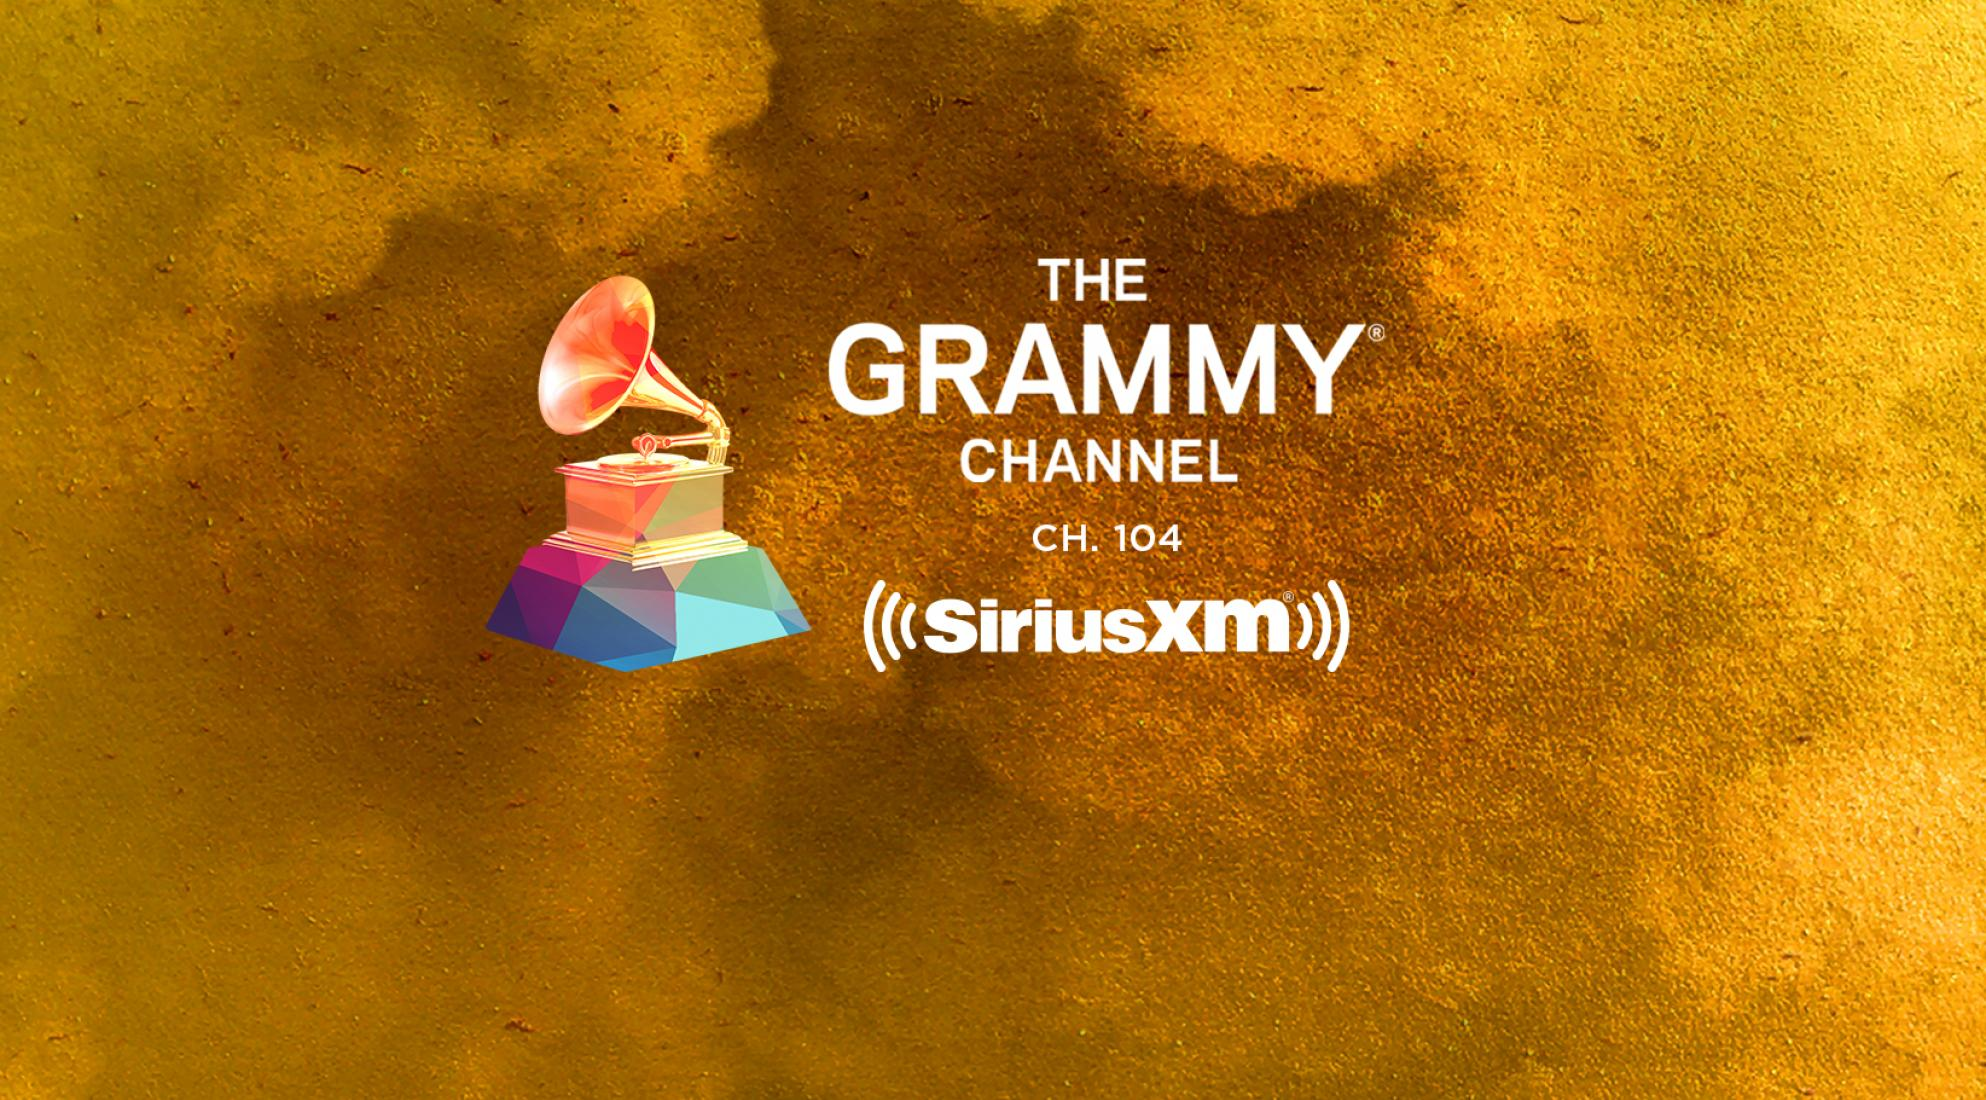 SiriusXM launches The GRAMMY Channel